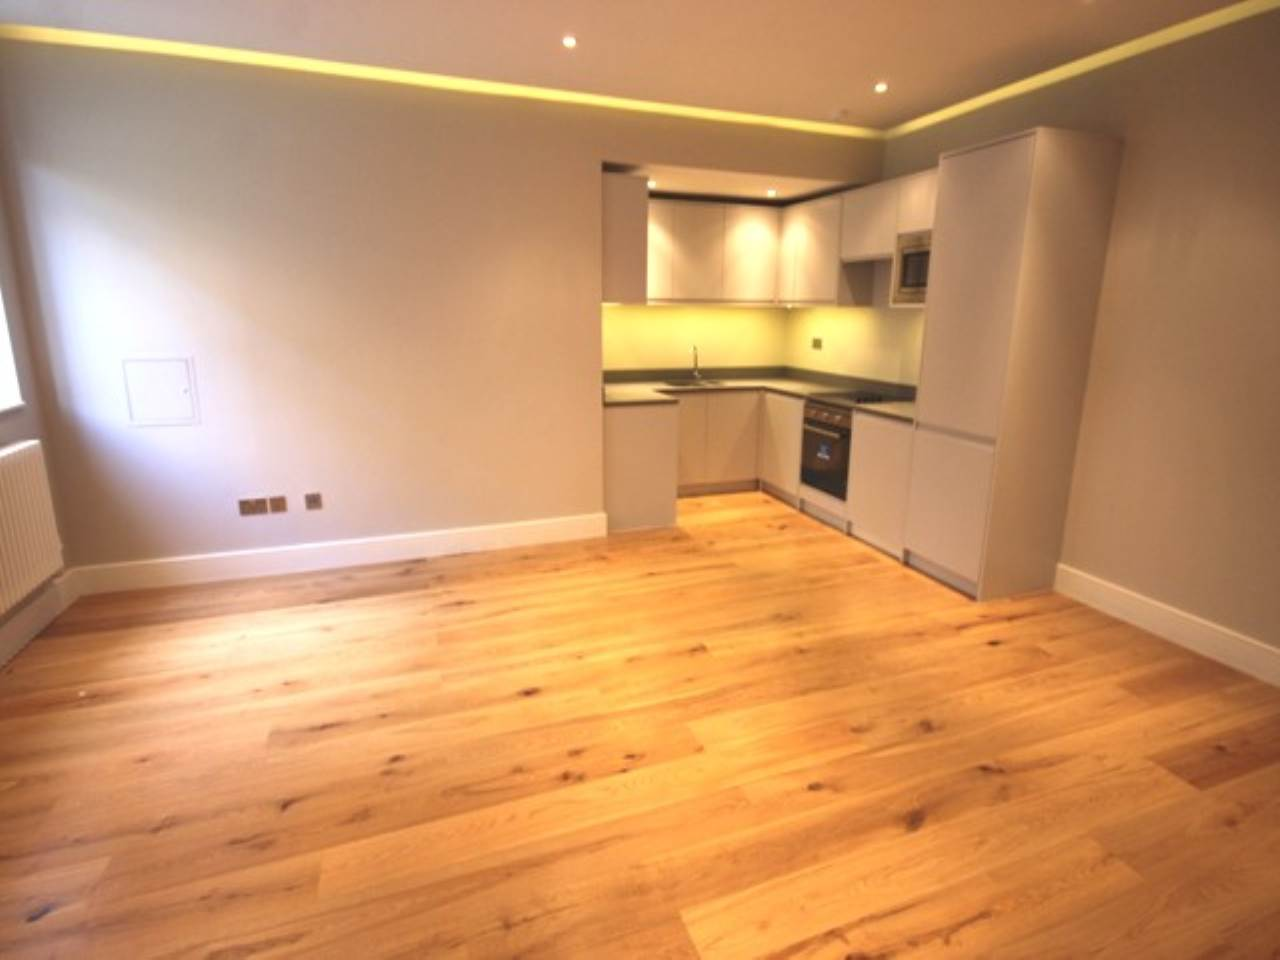 2 bed flat to rent in Leyton - Property Image 1